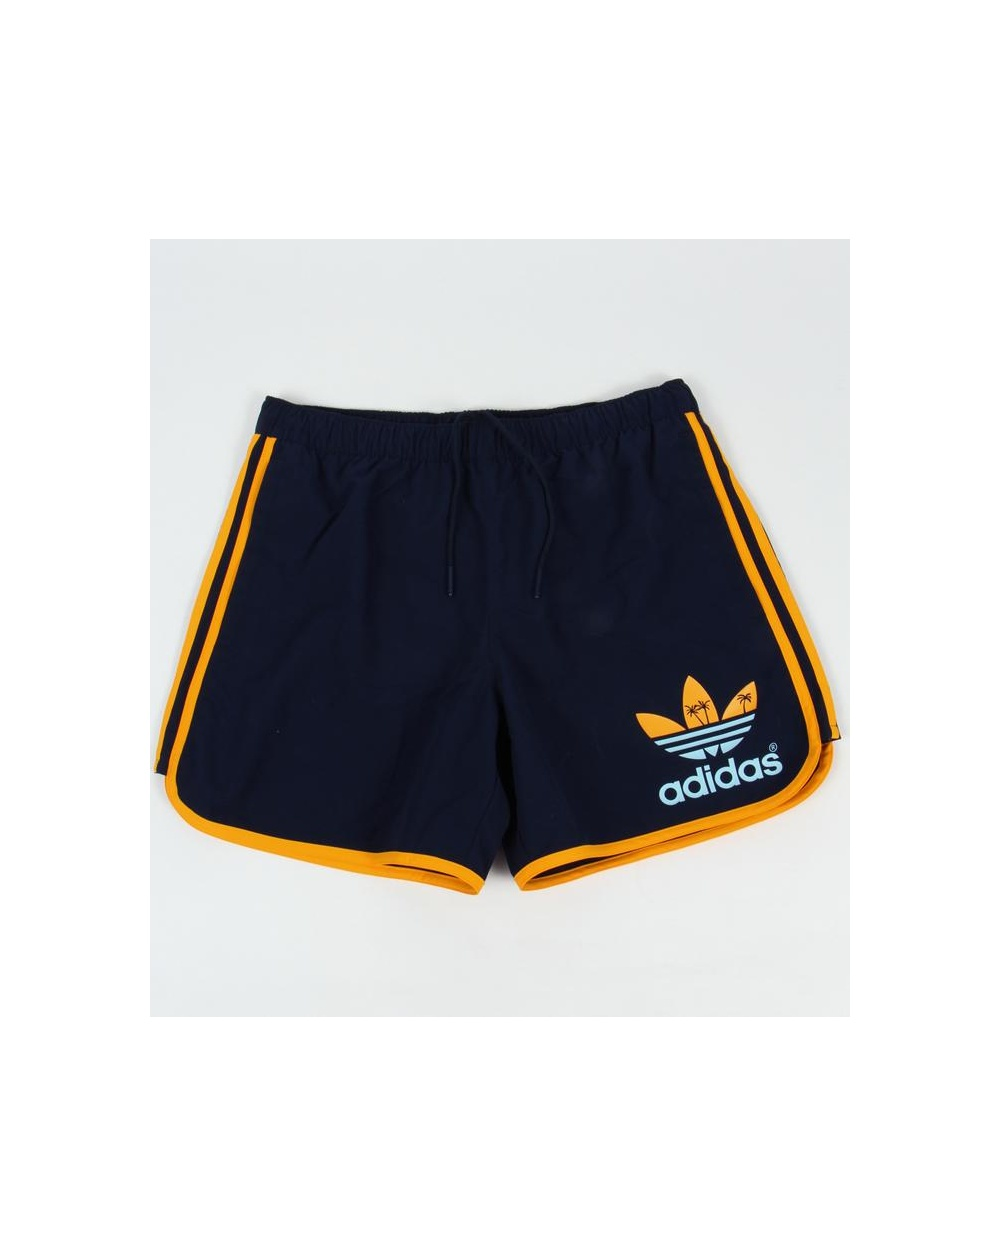 Adidas Originals Island Escape Swim Shorts Navy - adidas